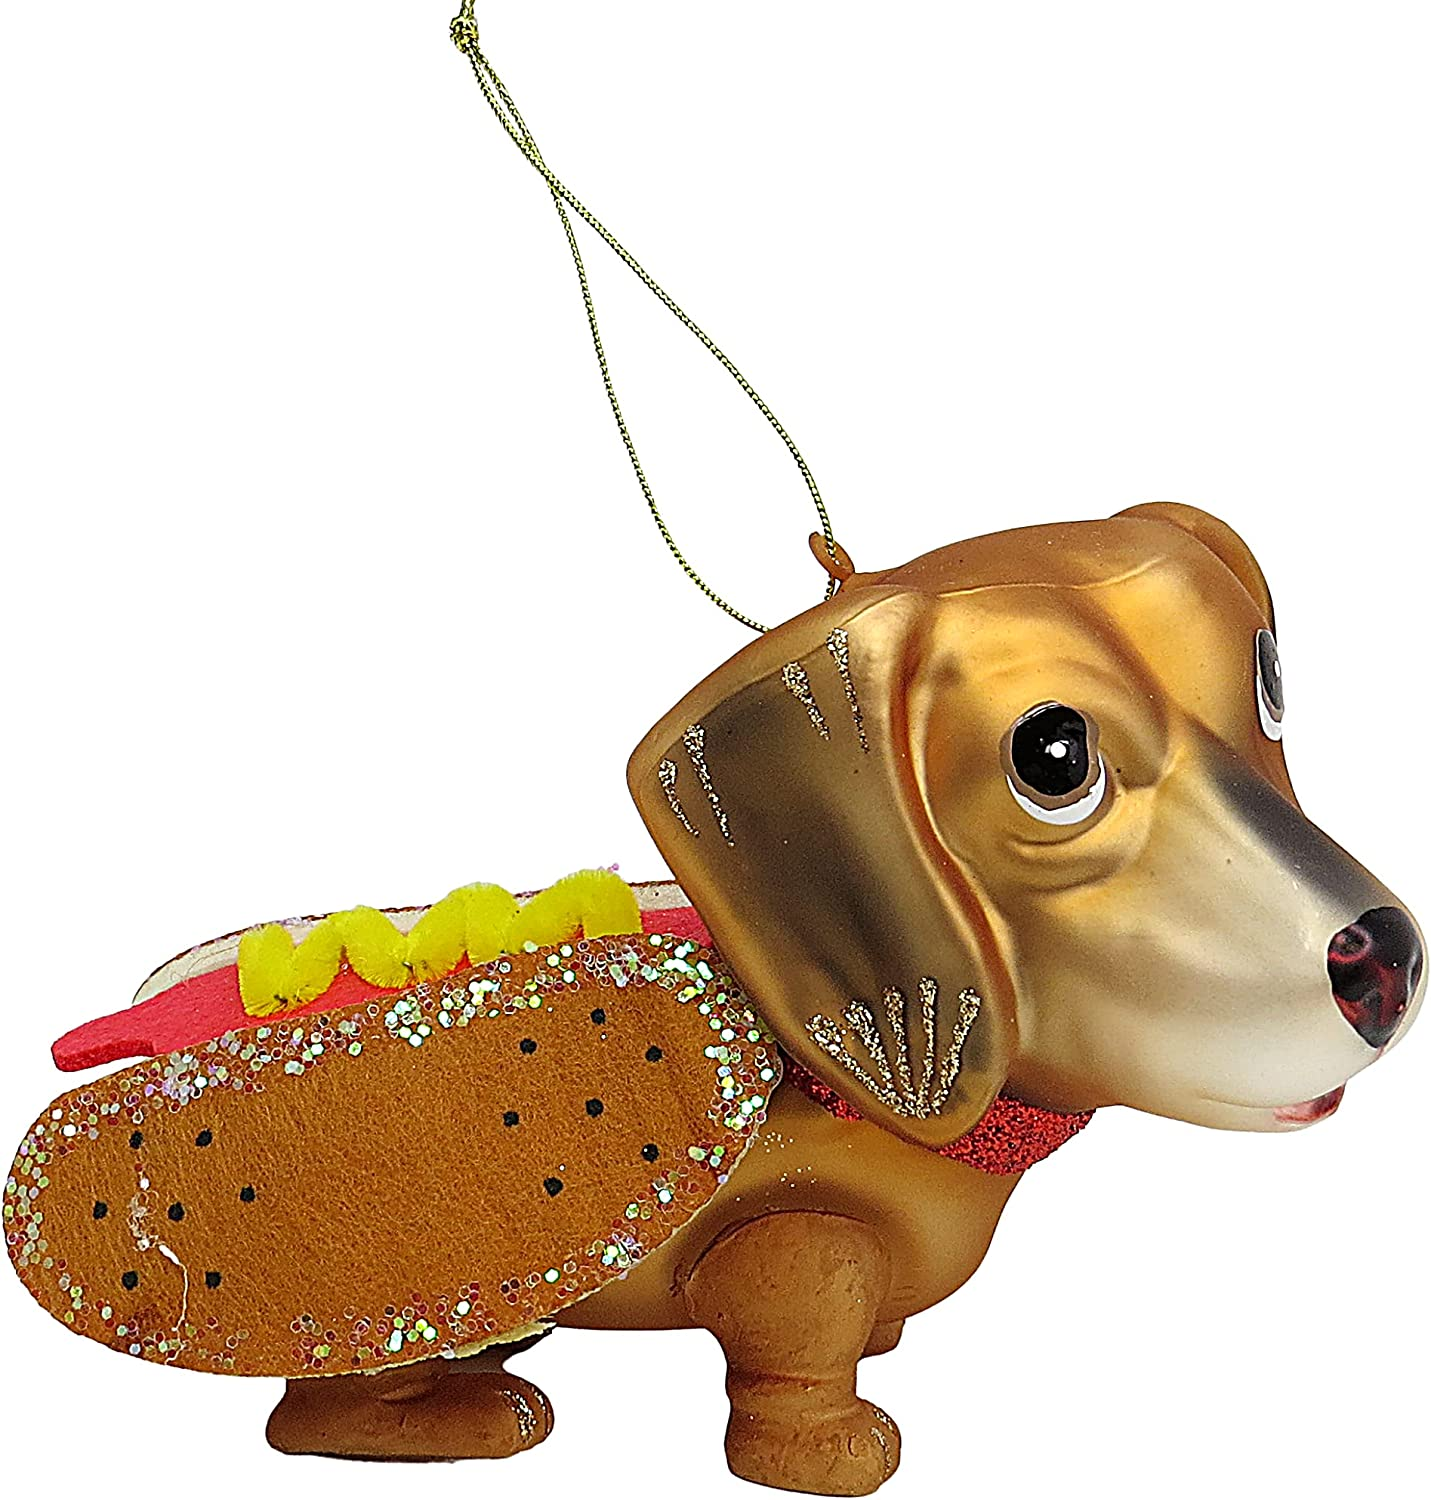 Hand Blown Glass Weiner Dog Dachshund First Christmas 2021 Tree Ornament, Food and Puppy Ornaments Funny Holiday Decorations for Home, 3.75 inches